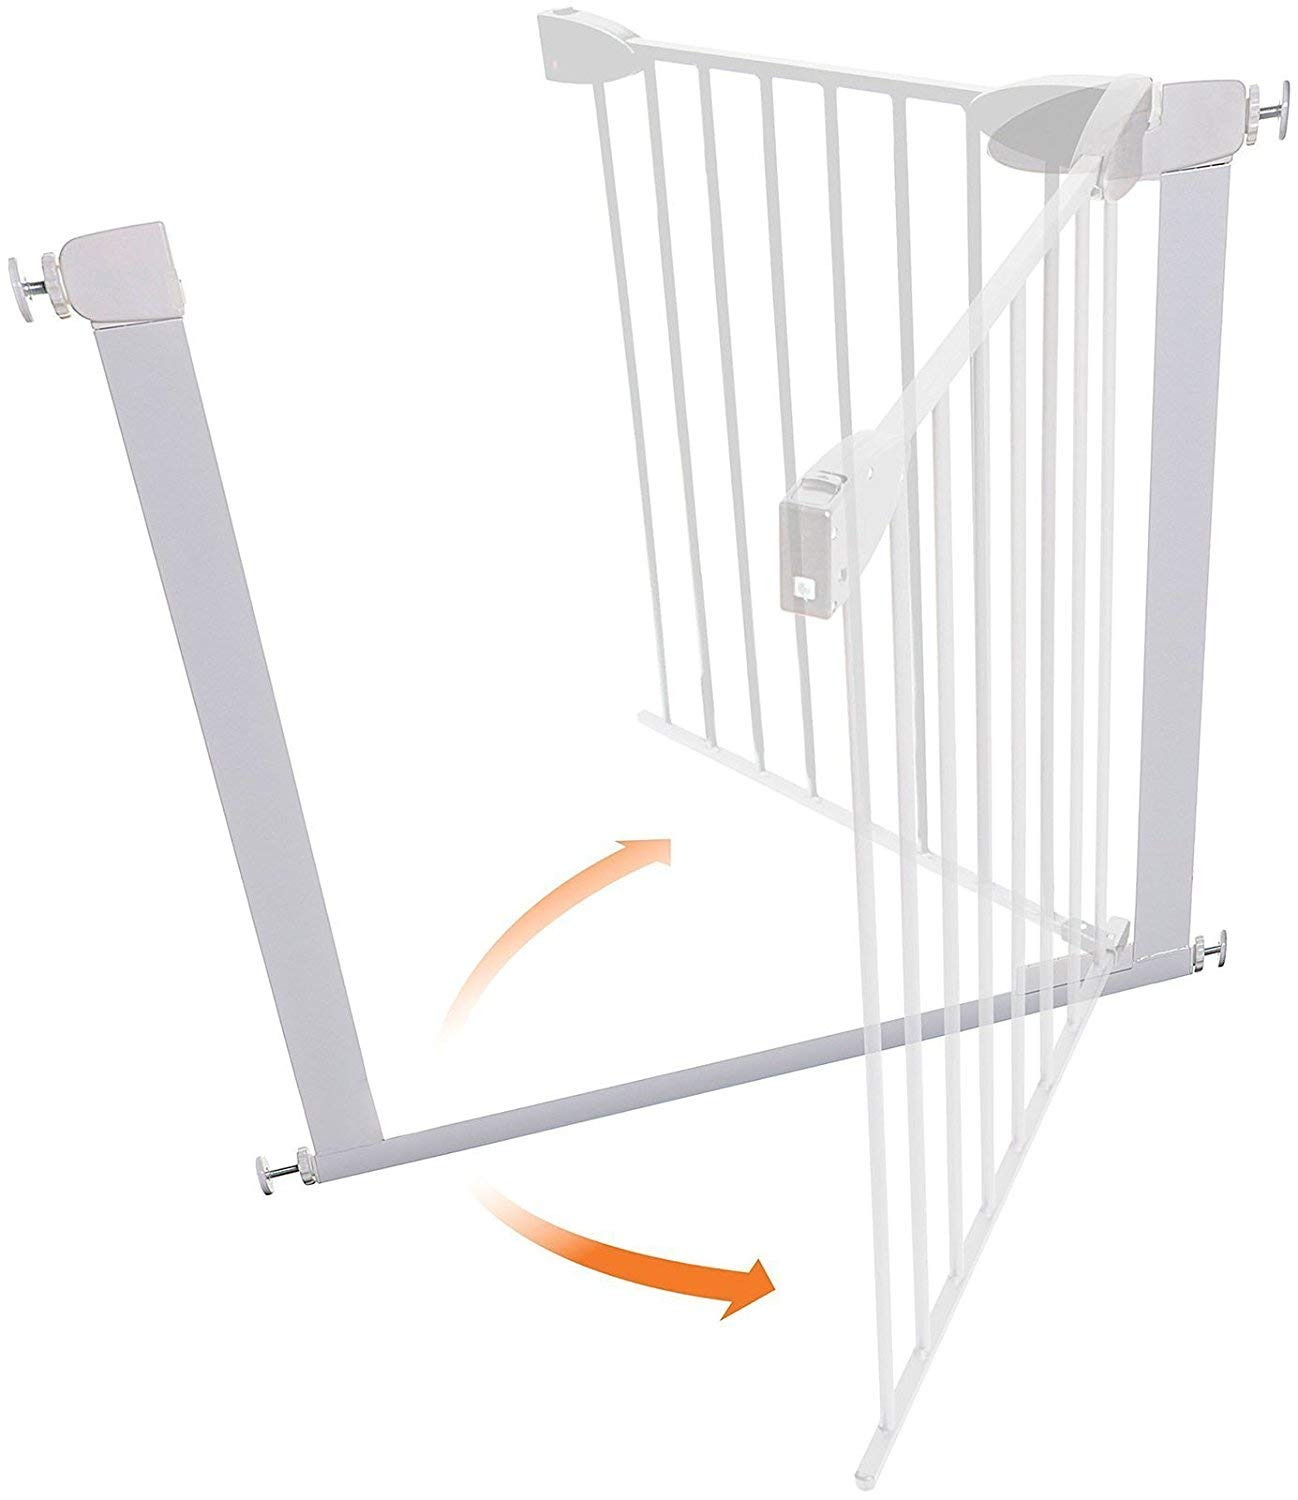 ALLAIBB Walk Thru Metal Baby Gate Pressure Mount Kit Auto Close Child Safety Gate Size 81.89''-84.65'' (White) by ALLAIBB (Image #3)